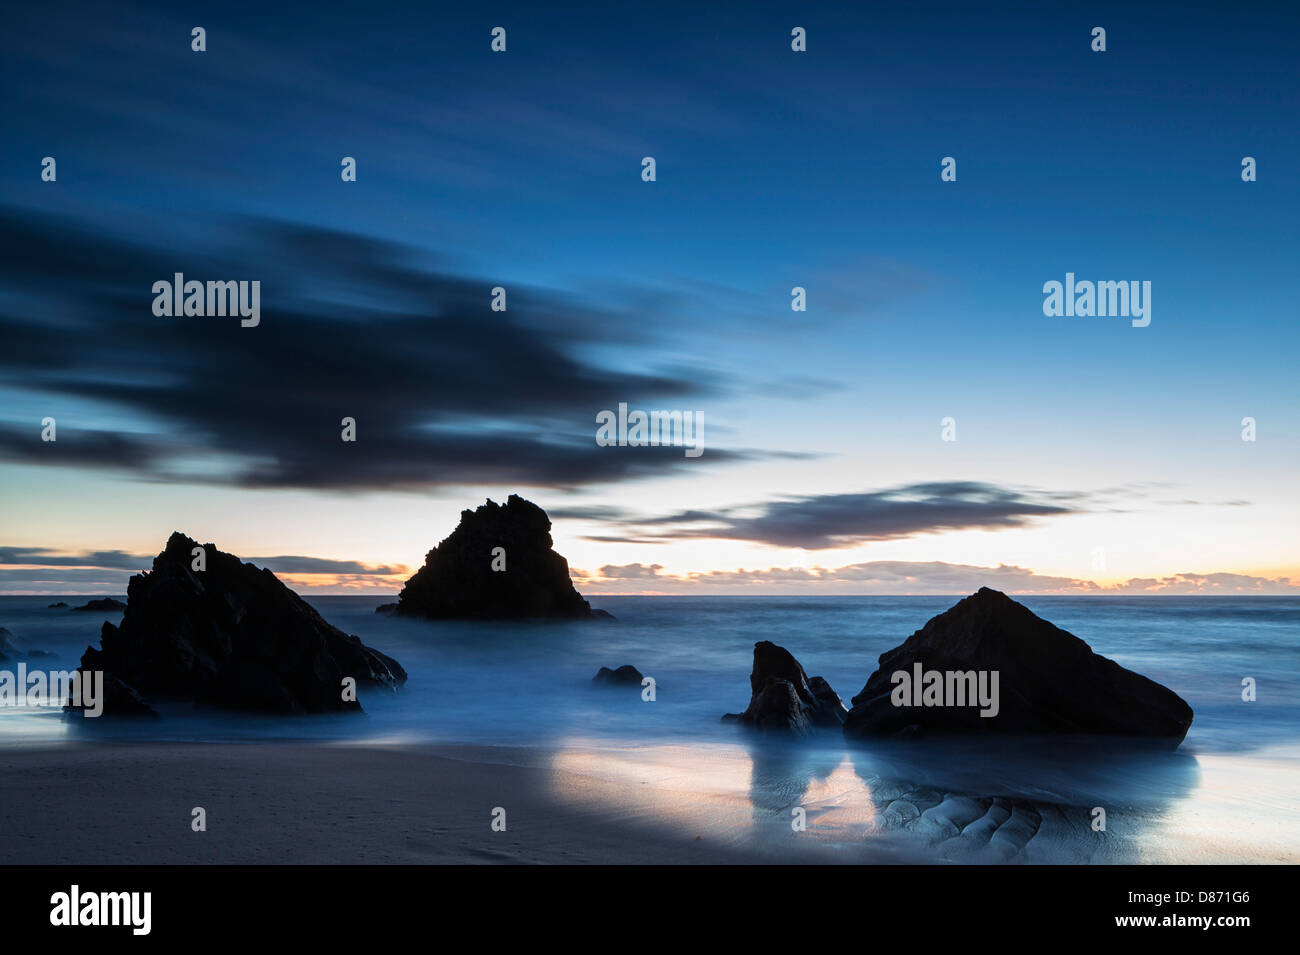 Portugal, View of Praia da Adraga at blue hour - Stock Image